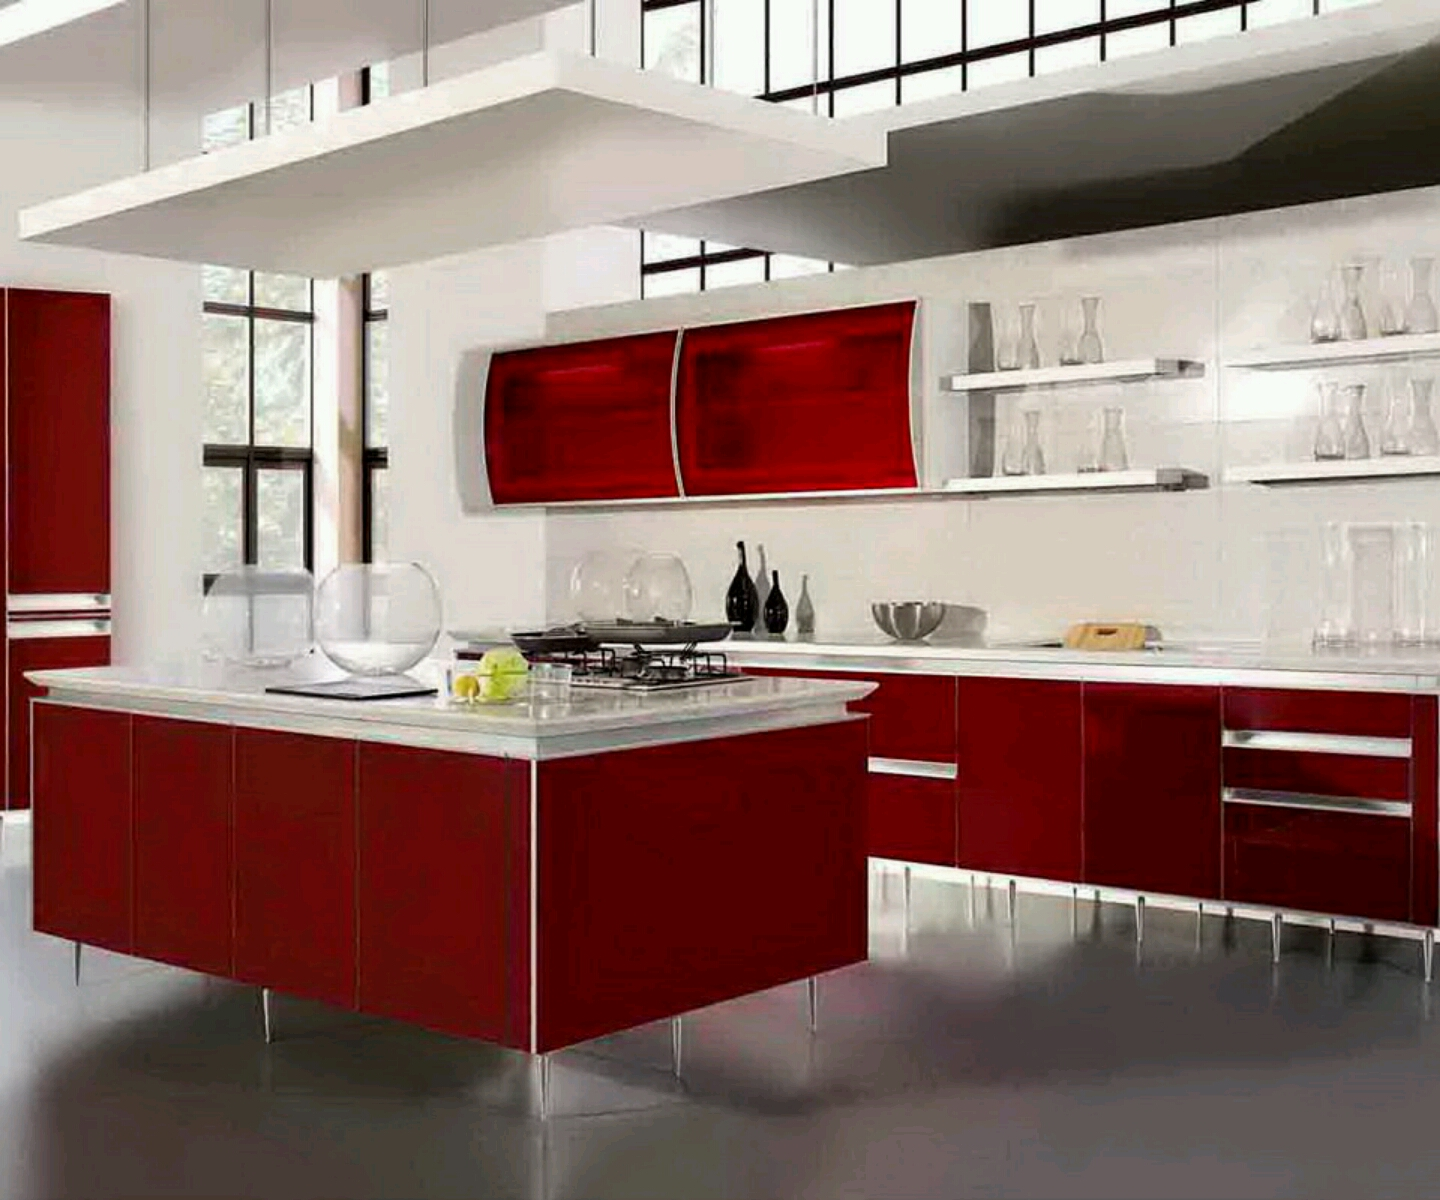 Latest Top10 Modular Modern KitchenPART8 YouTube New Kitchen – Newest Kitchen Designs